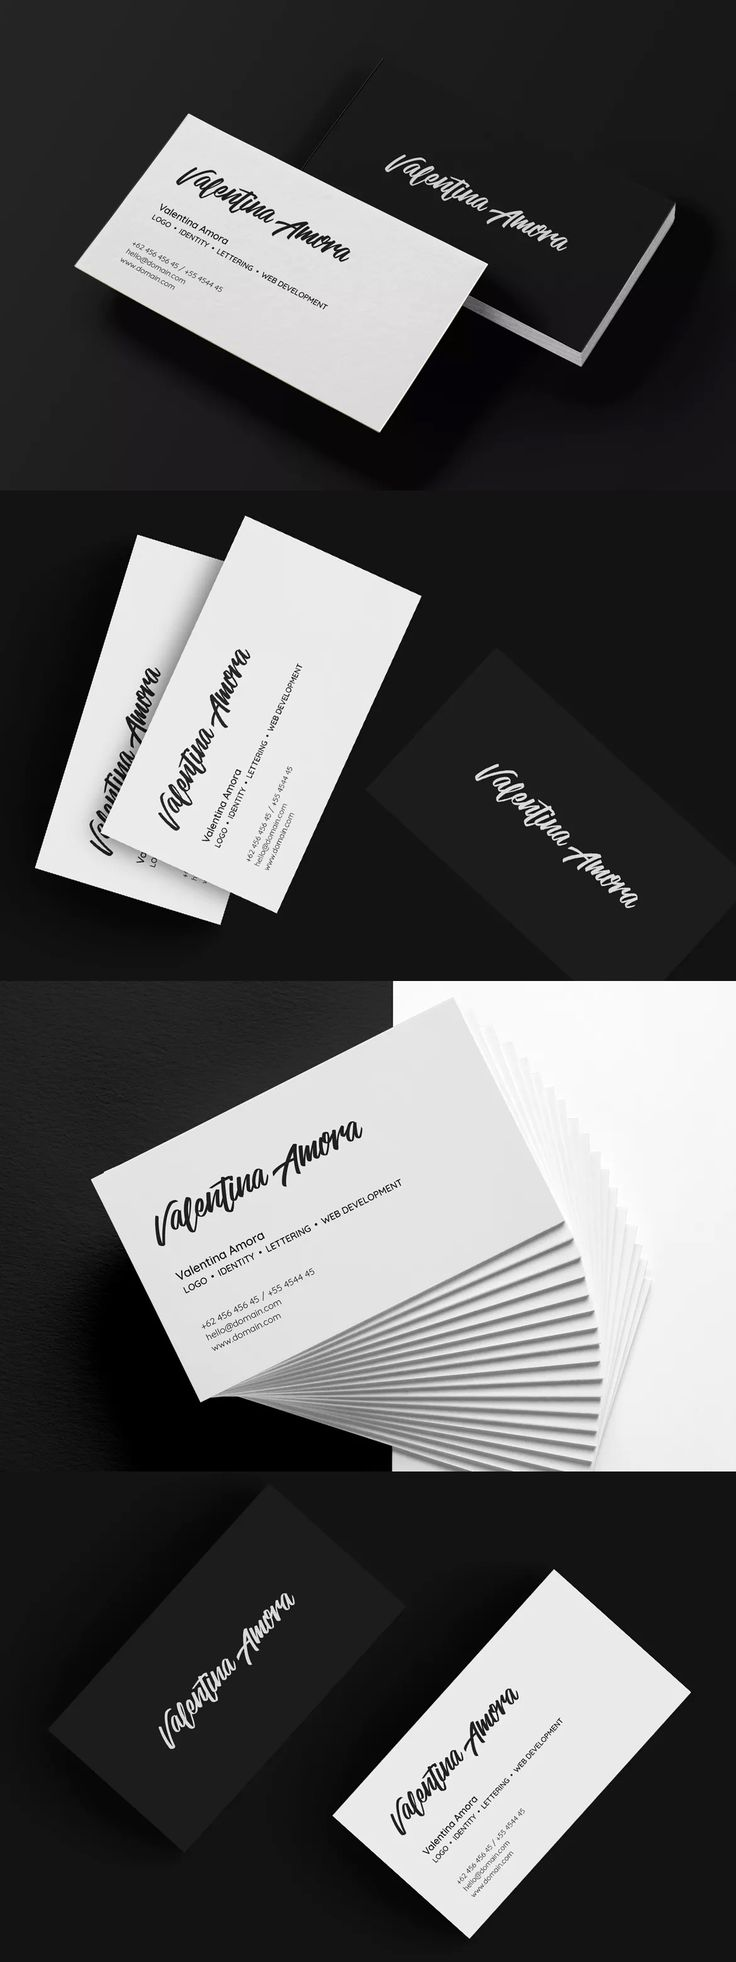 413 best business card templates images on pinterest minimal freelance business card template psd flashek Gallery